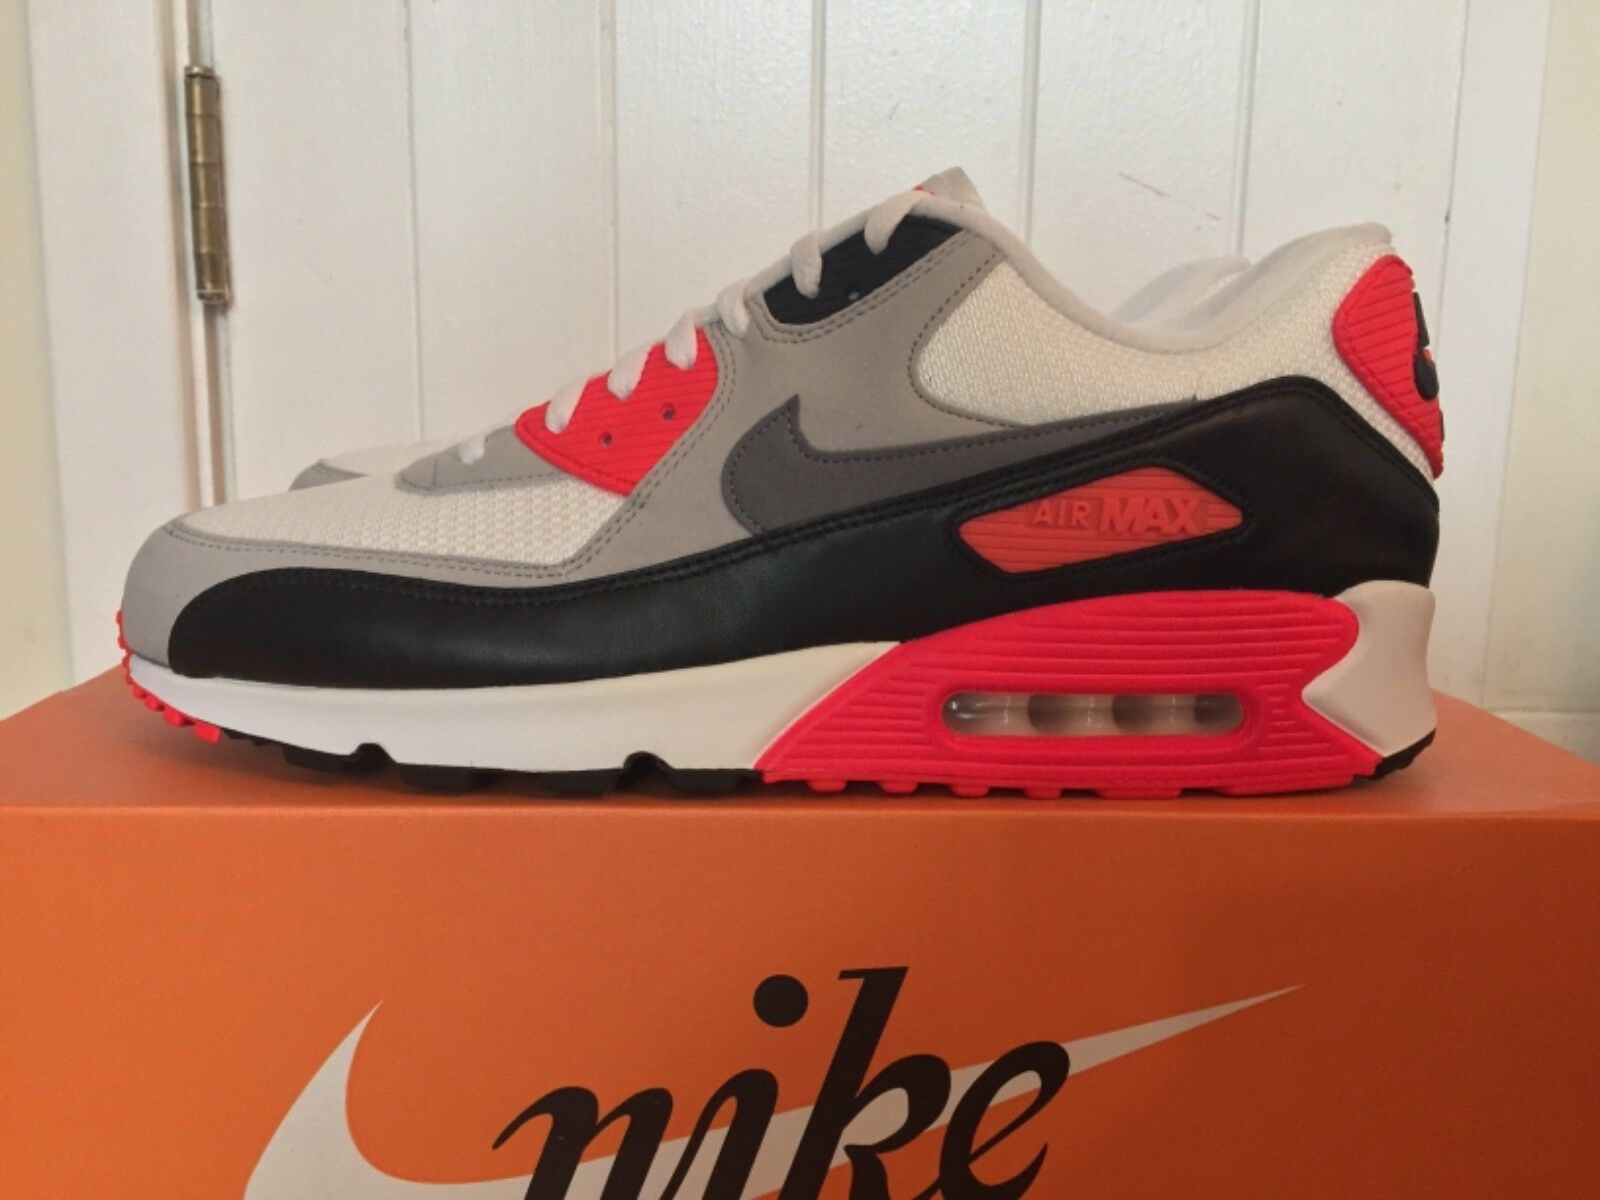 Air Max 90 infrared OG Nike deadstock 2015 release size 14 deadstock Nike 100% authentic 9c17e1